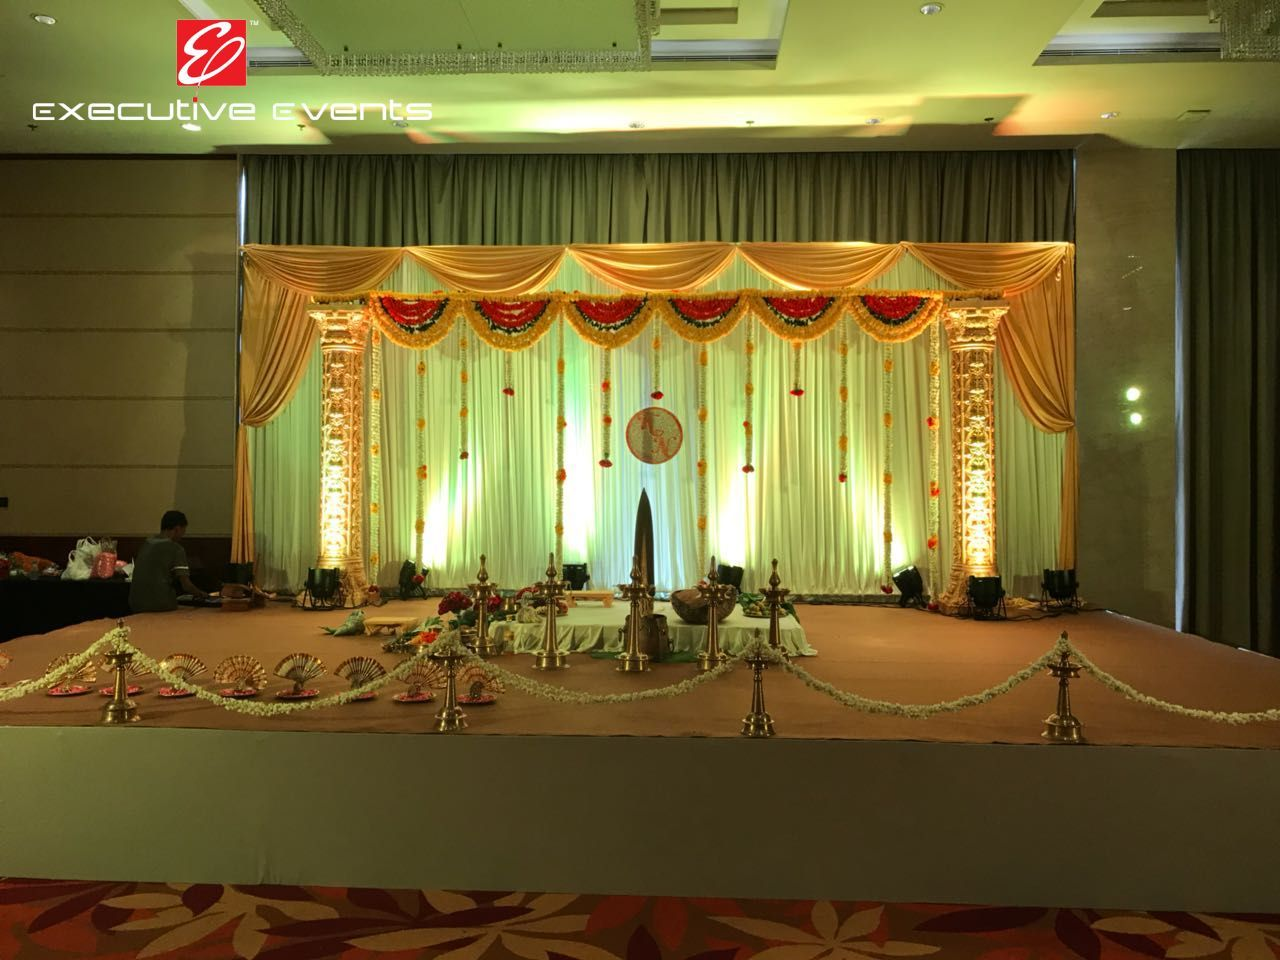 Wedding stage decoration ideas kerala  Pin by Executiveevents on Wedding Stages  Pinterest  Kerala